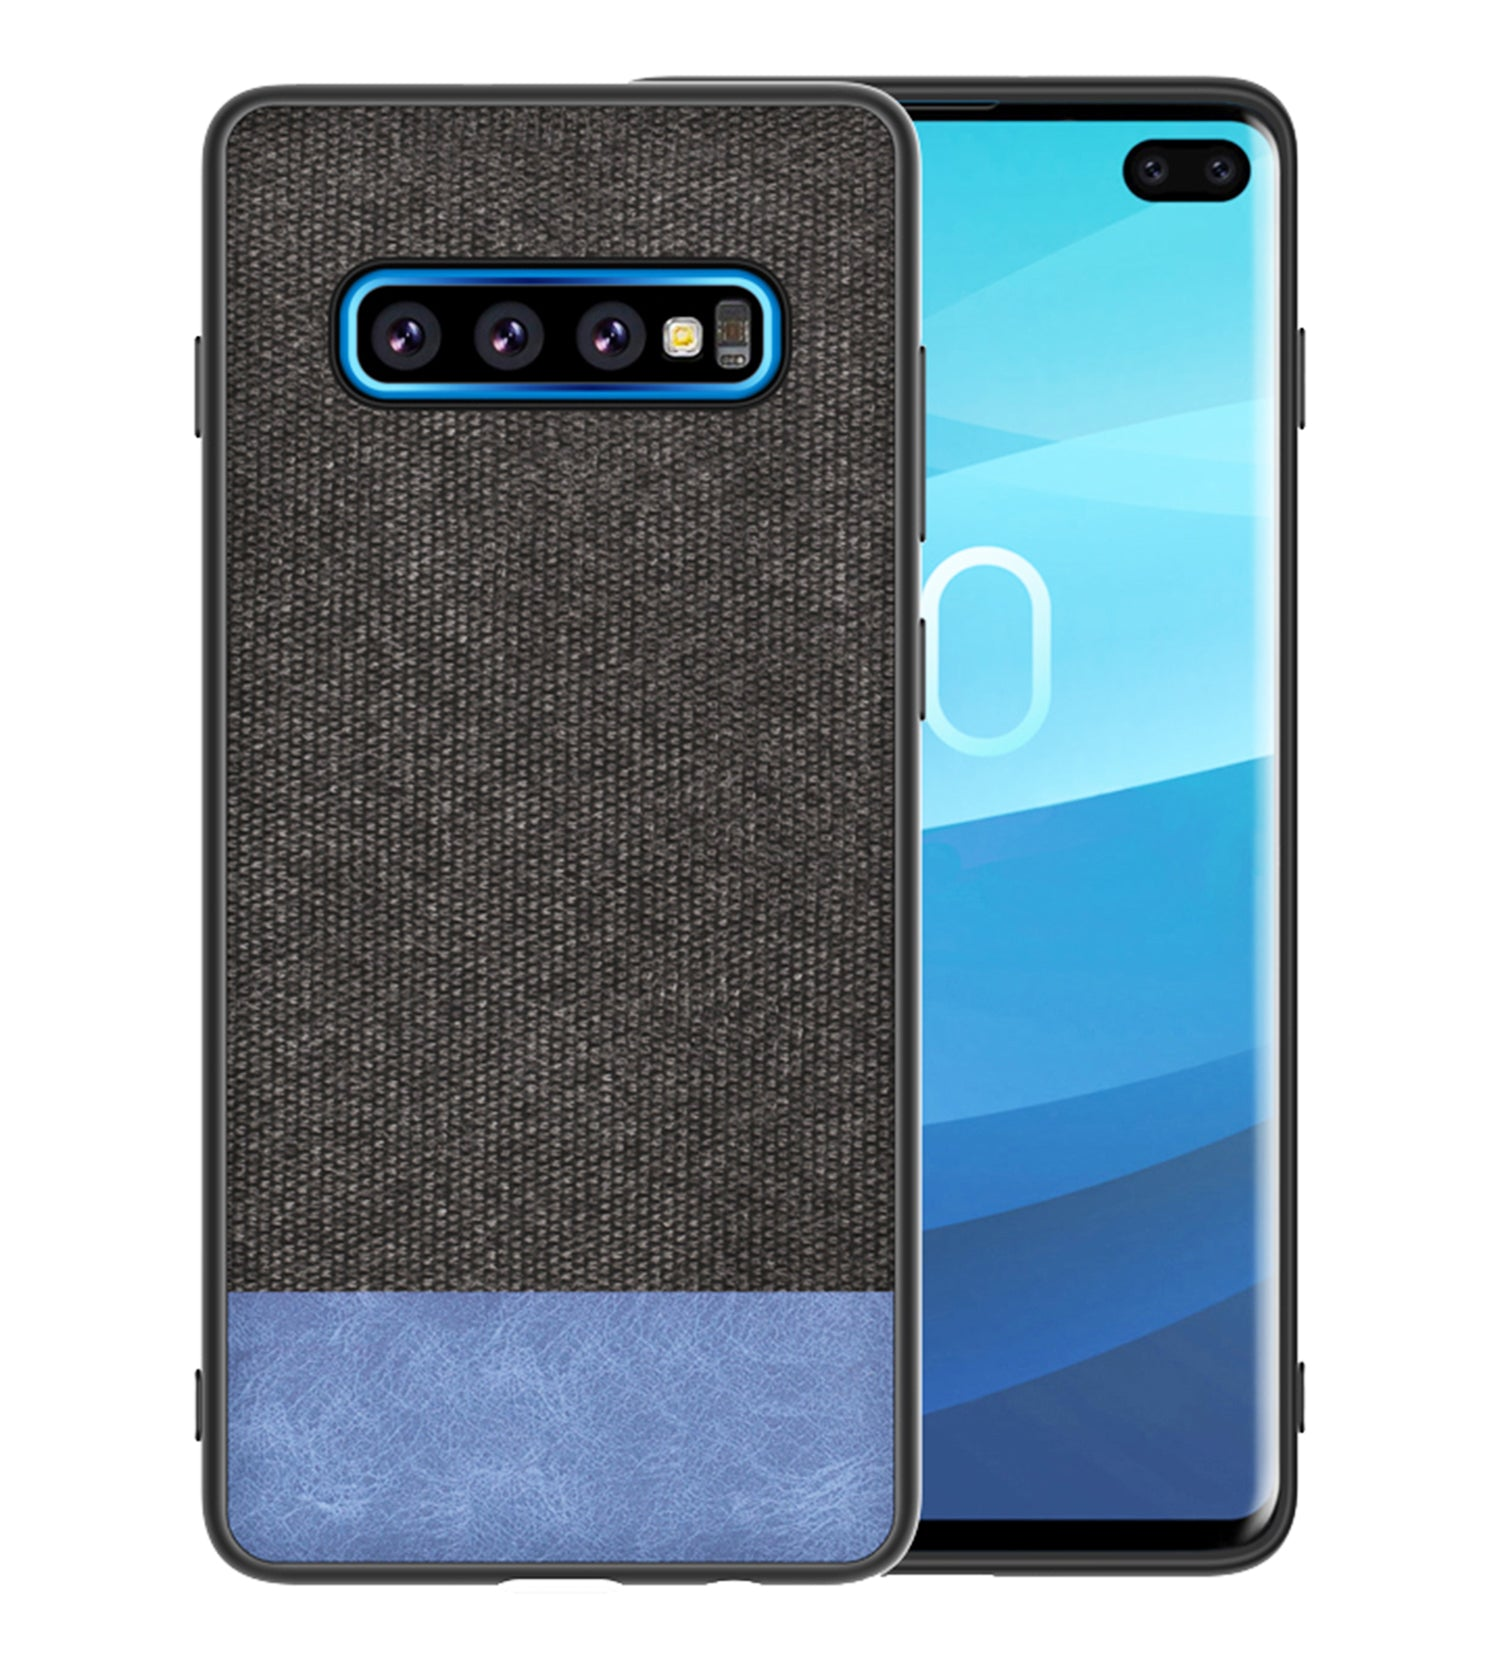 Fabric + Leather Hybrid Premium Protective Cases Cover for Samsung Galaxy S10 - Mobizang